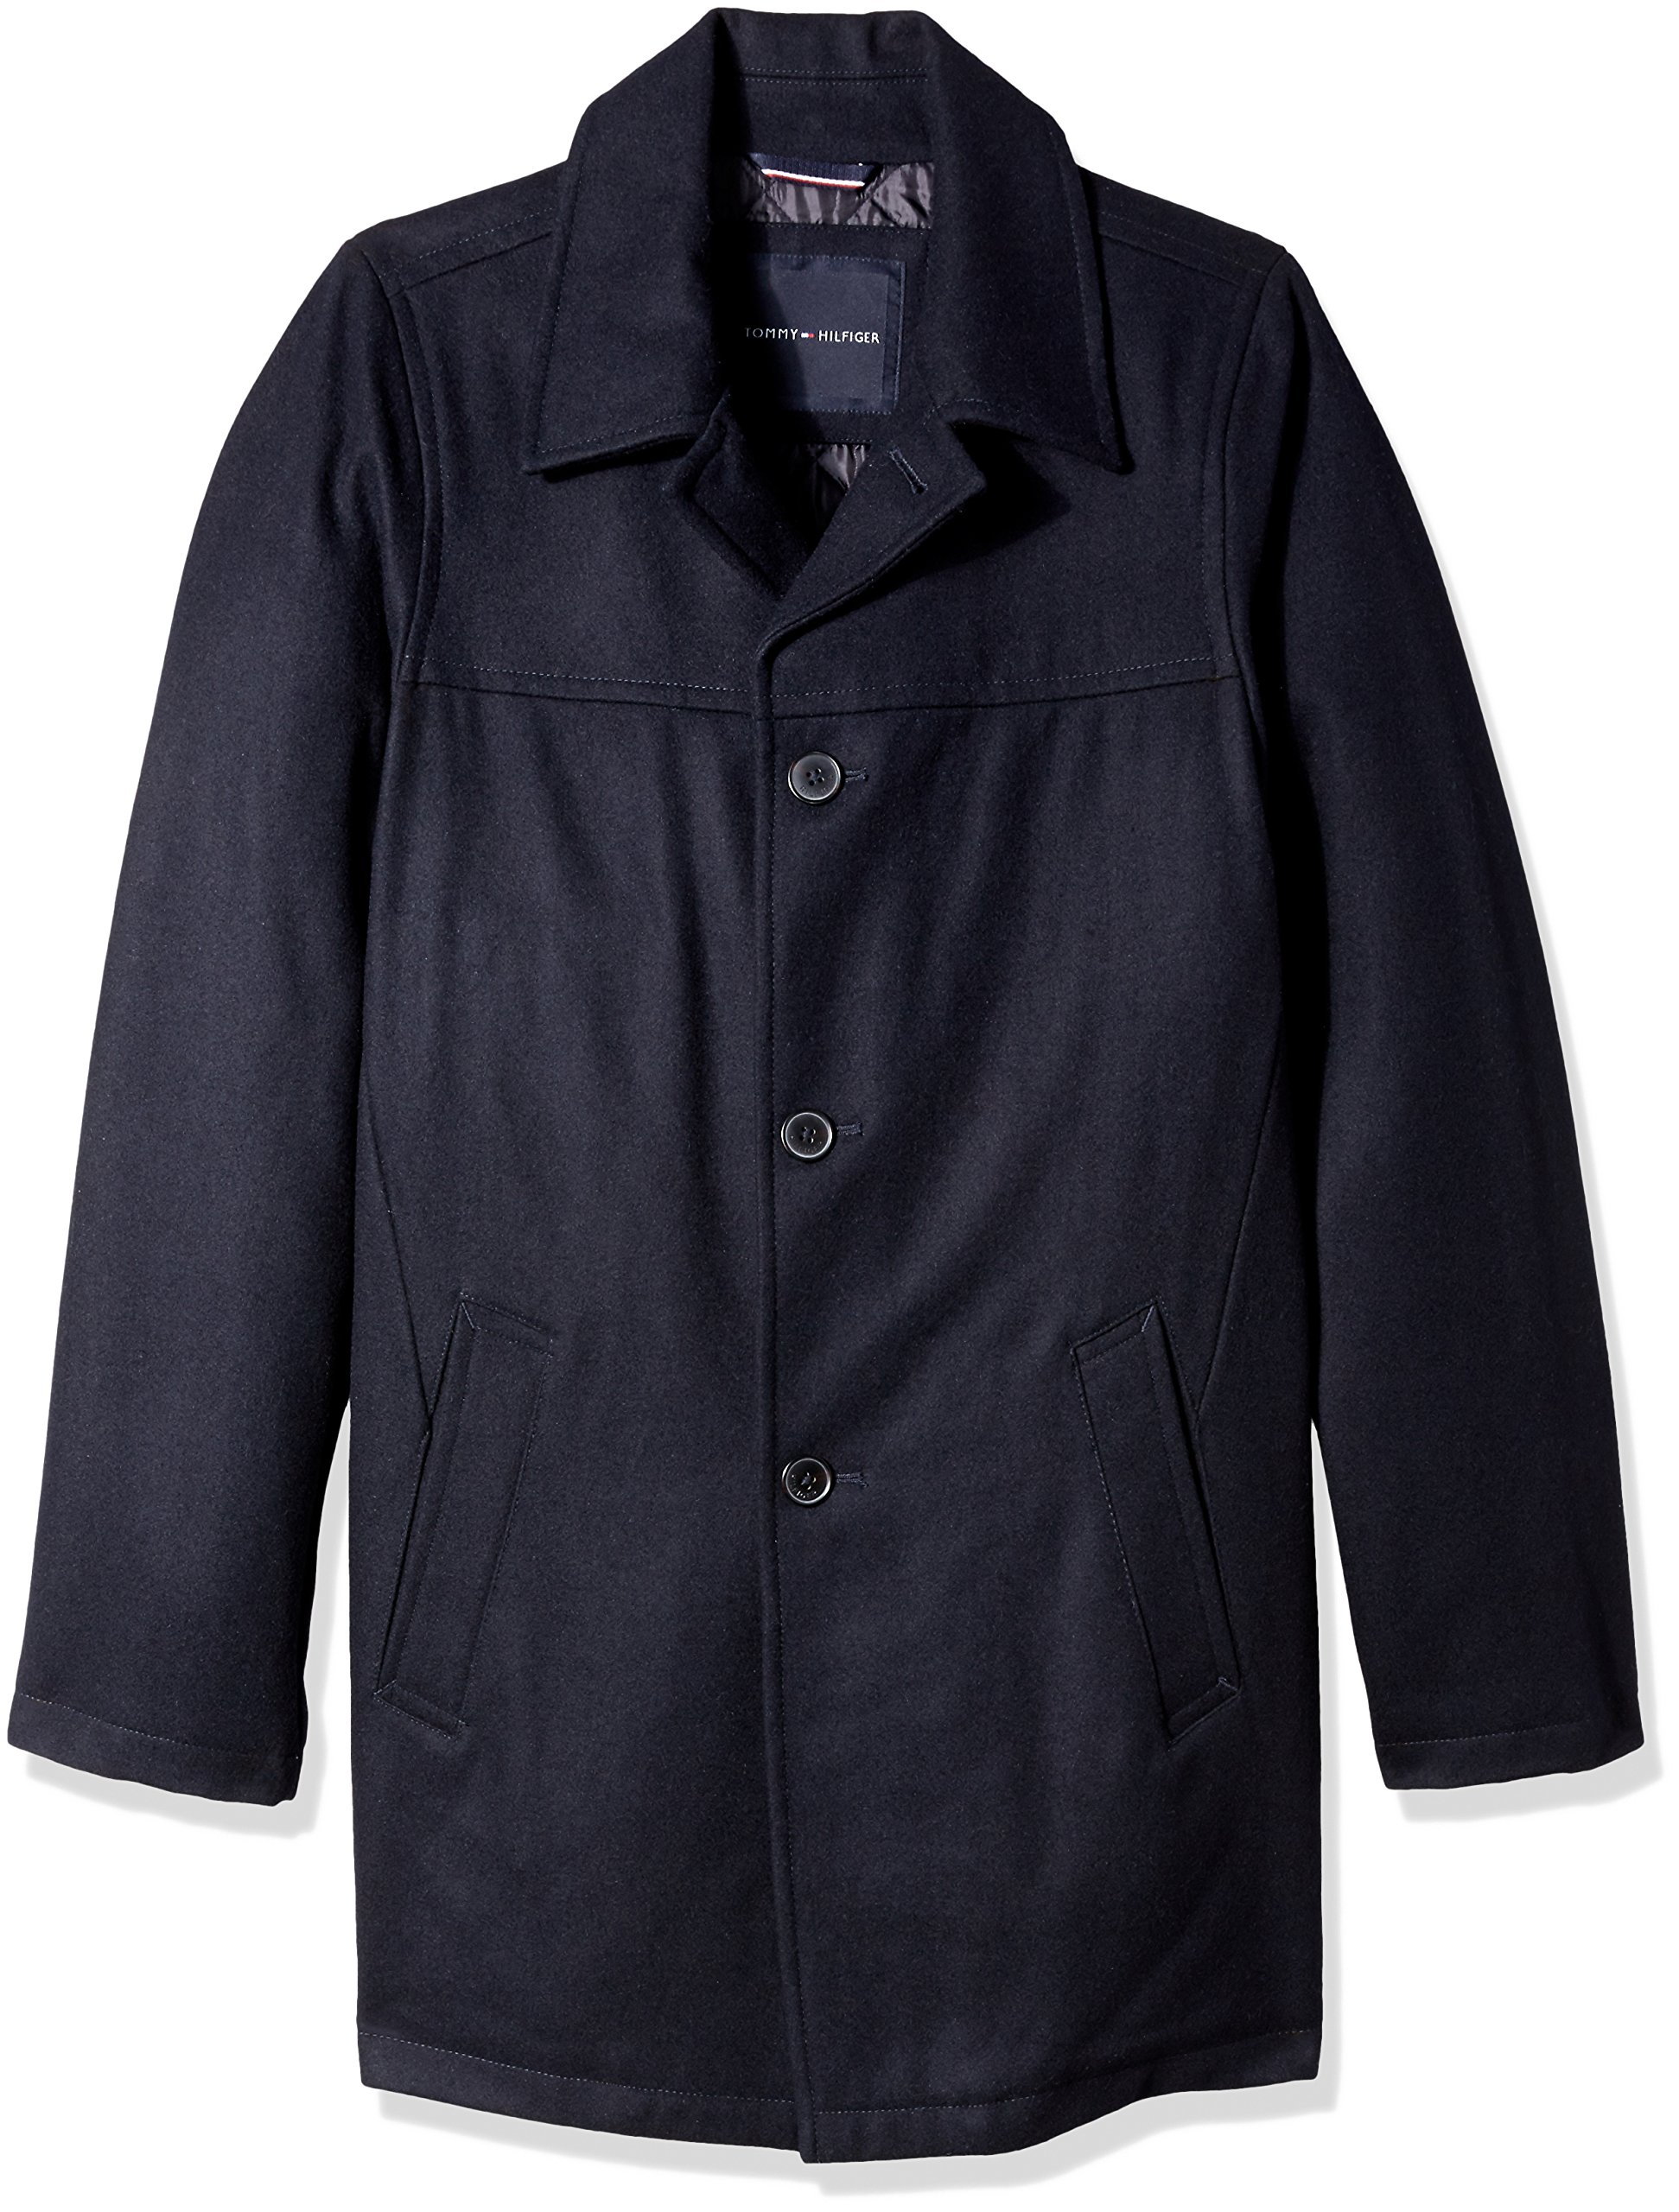 Tommy Hilfiger Men's Size Wool Melton Walking Coat with Detachable Scarf, Navy, Long/Tall by Tommy Hilfiger